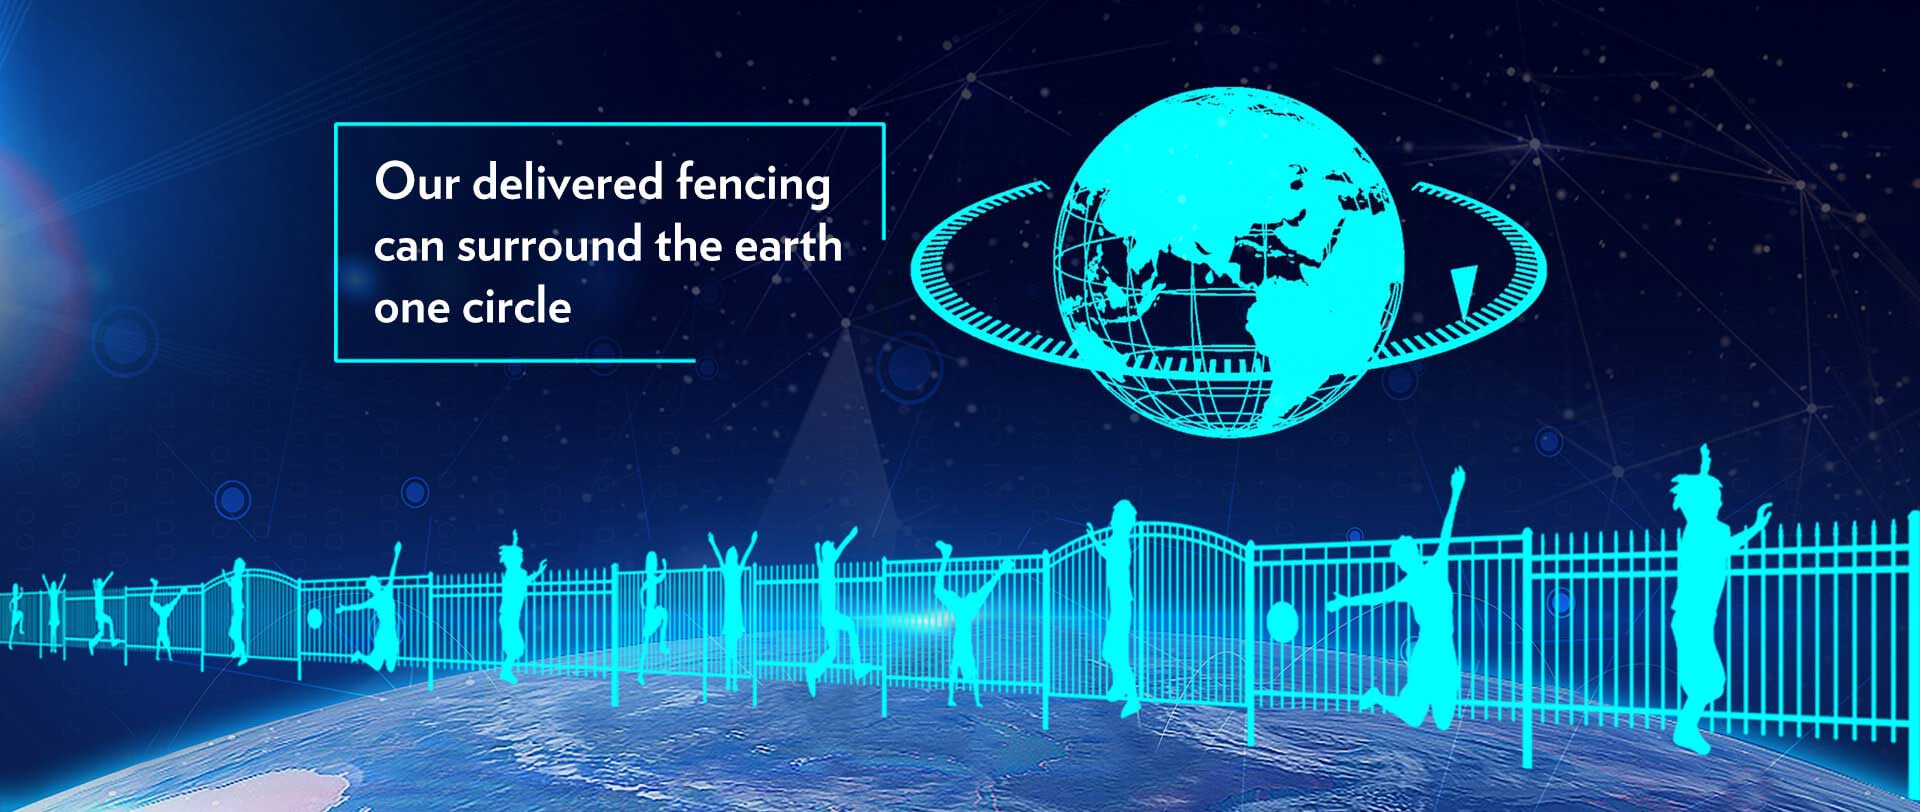 Our delivered fencing can surround the world one circle